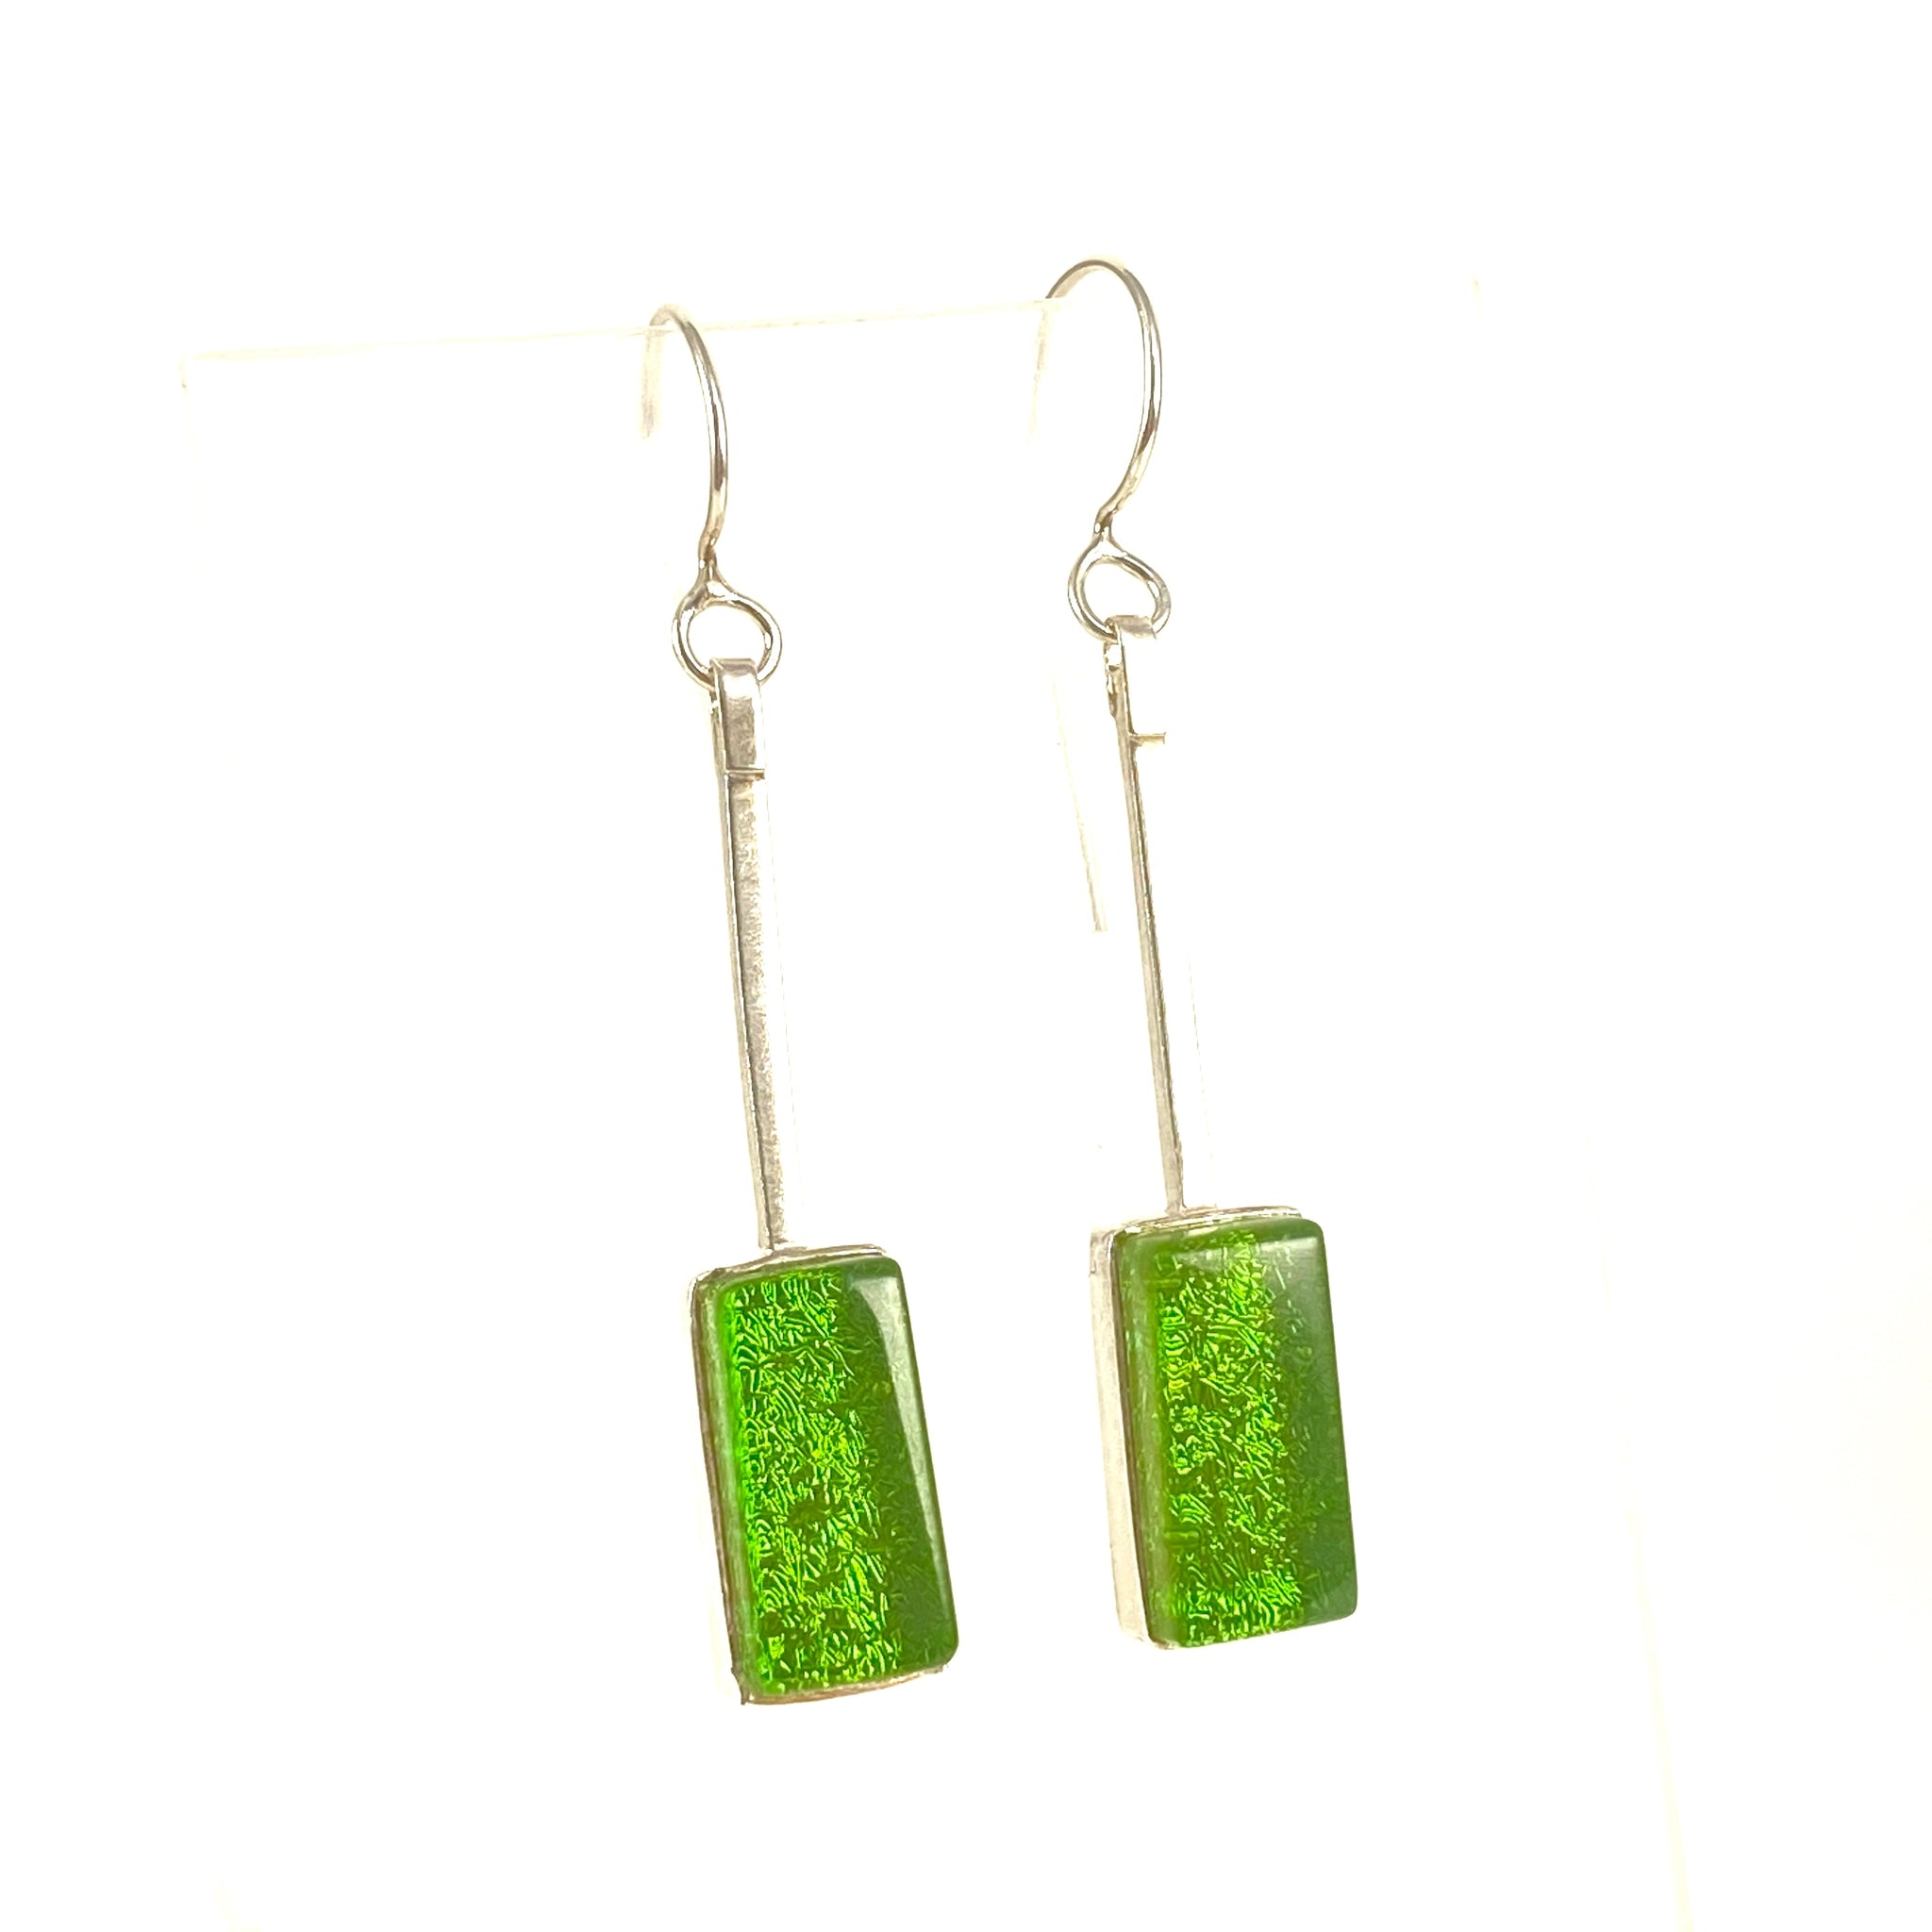 green, swing earrings, fused glass, glass jewelry, glass and silver jewelry, handmade, handcrafted, American Craft, hand fabricated jewelry, hand fabricated jewellery,  Athen, Georgia, colorful jewelry, sparkle, bullseye glass, dichroic glass, art jewelry